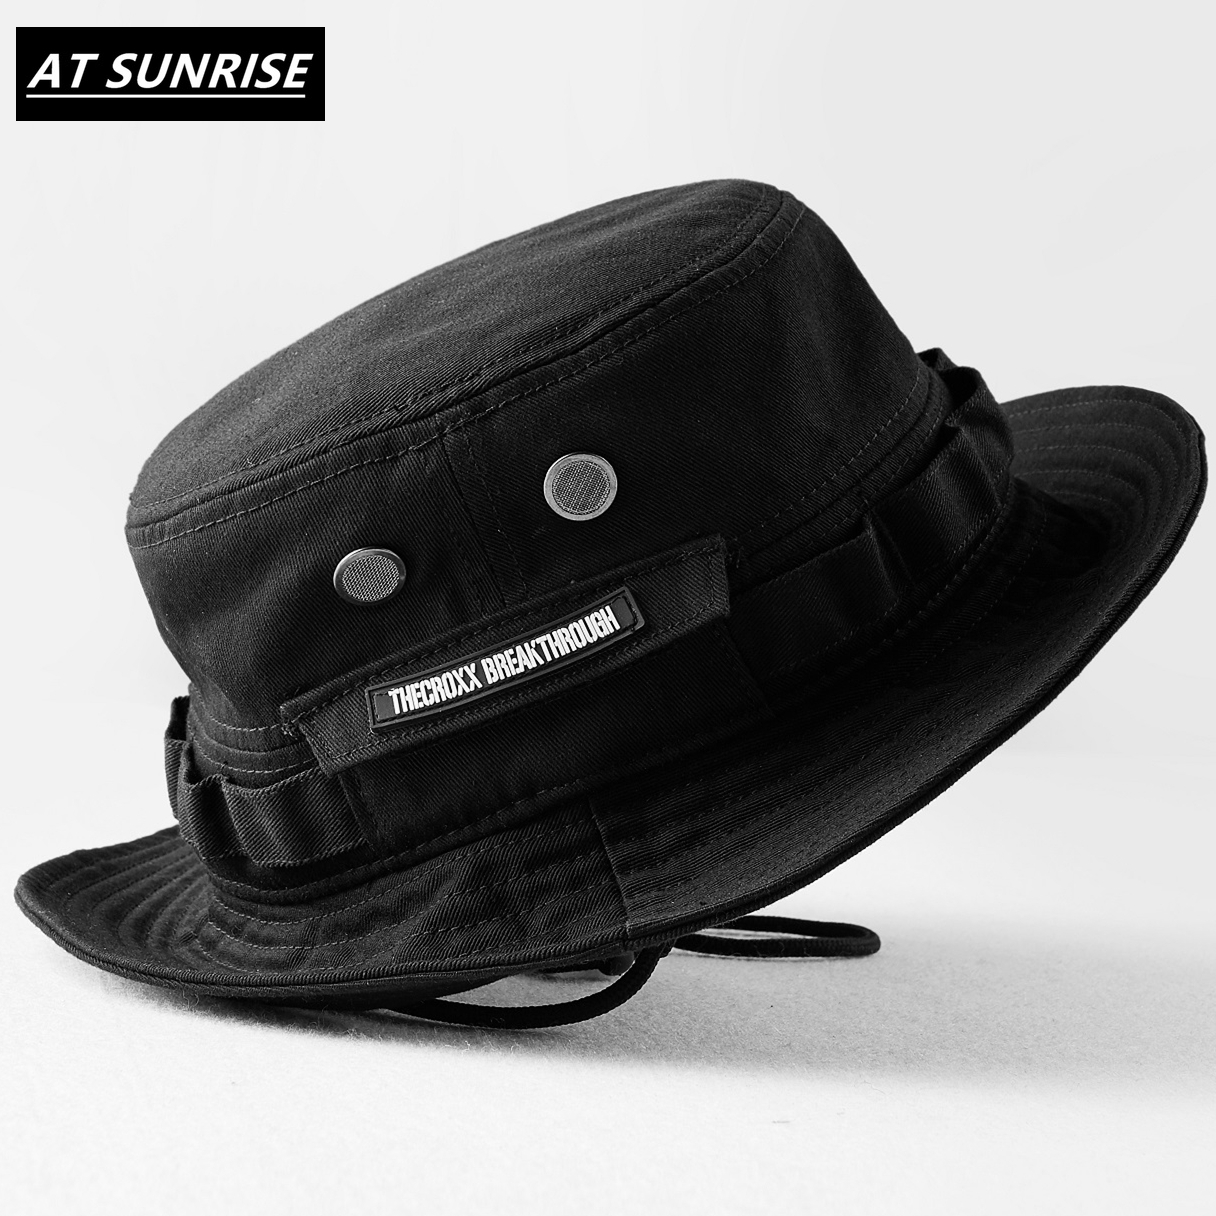 2020 New Brand Black Fisherman's Hat Bucket Hat Unisex Fashion Hip Hop Streetwear Men Women Warm Windproof Bucket Hat Outdoor